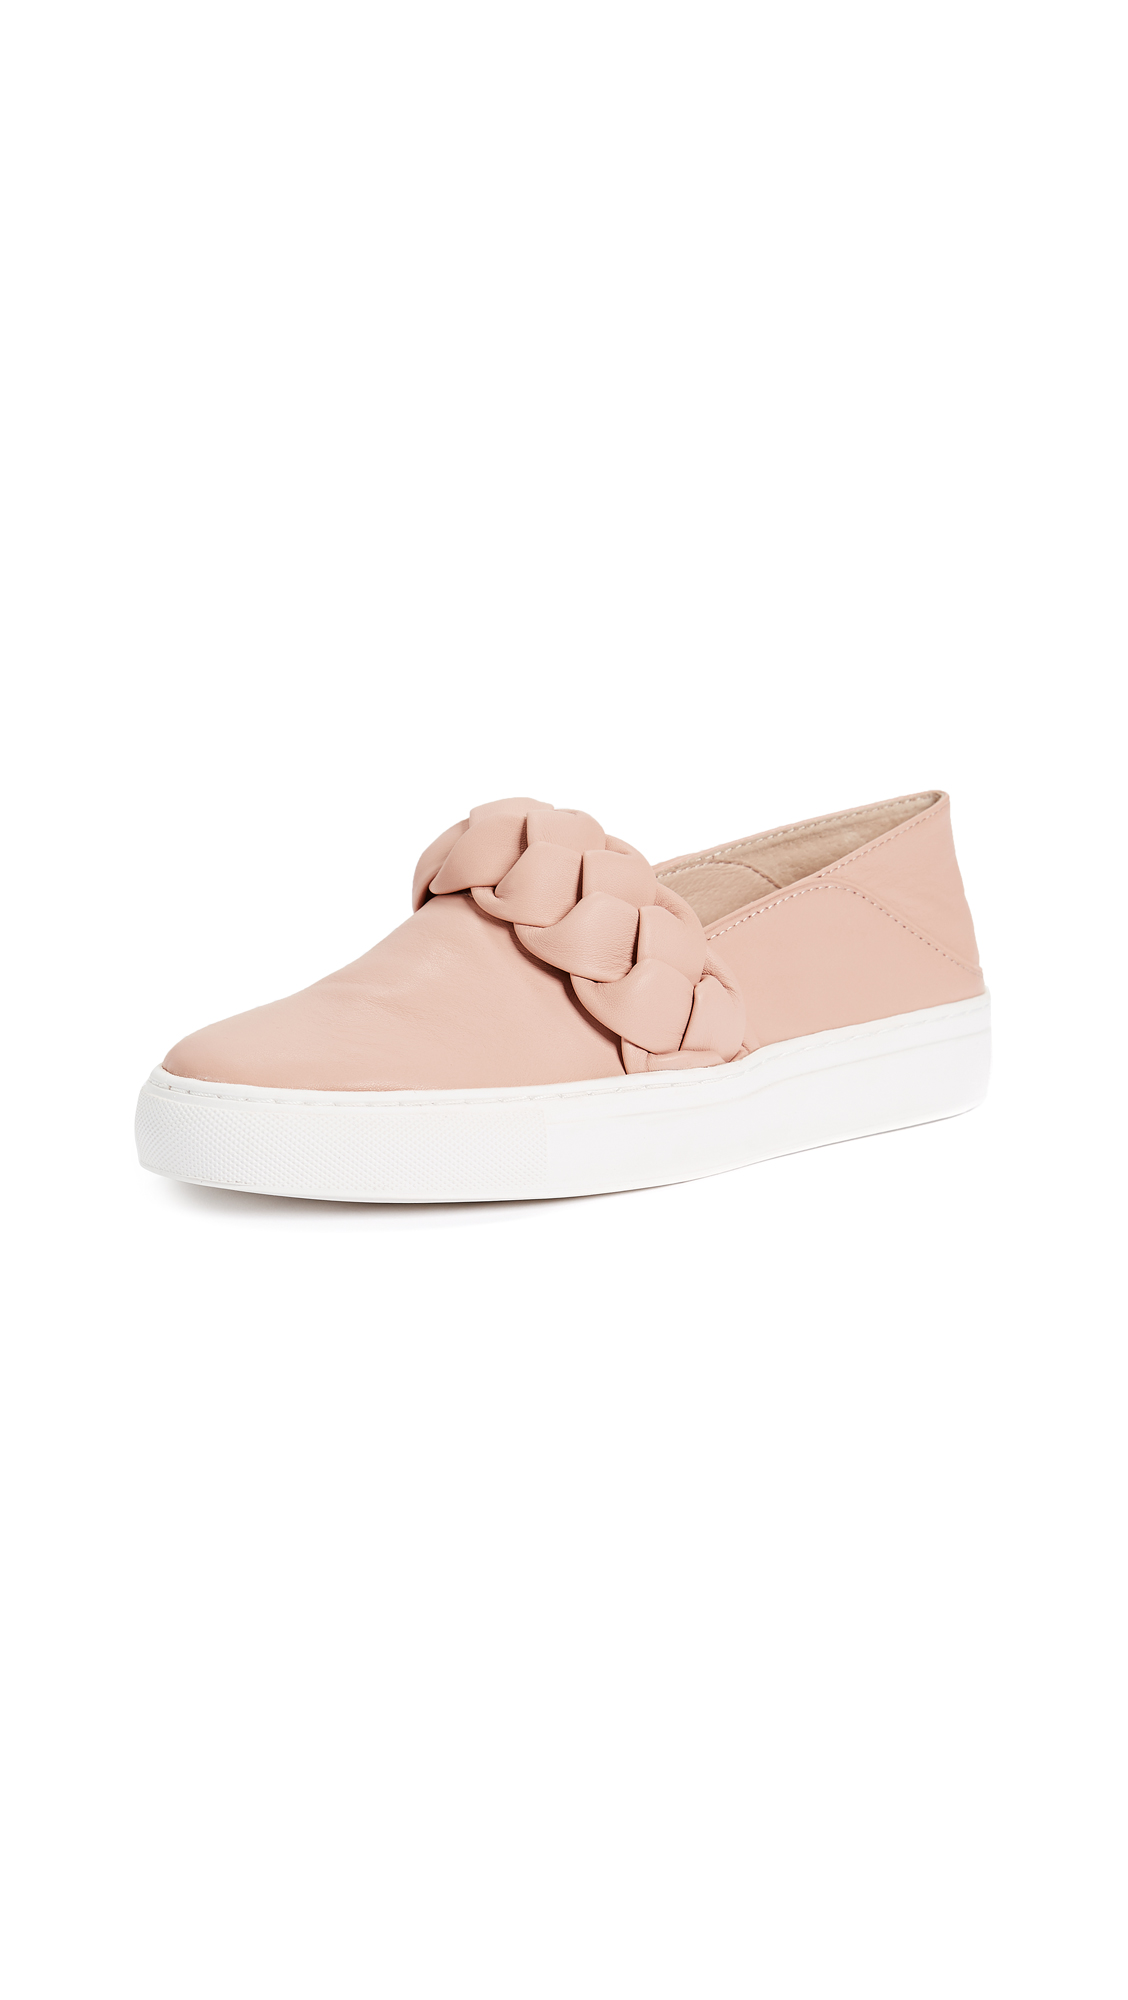 Rachel Zoe Burke Braid Sneakers - Blush